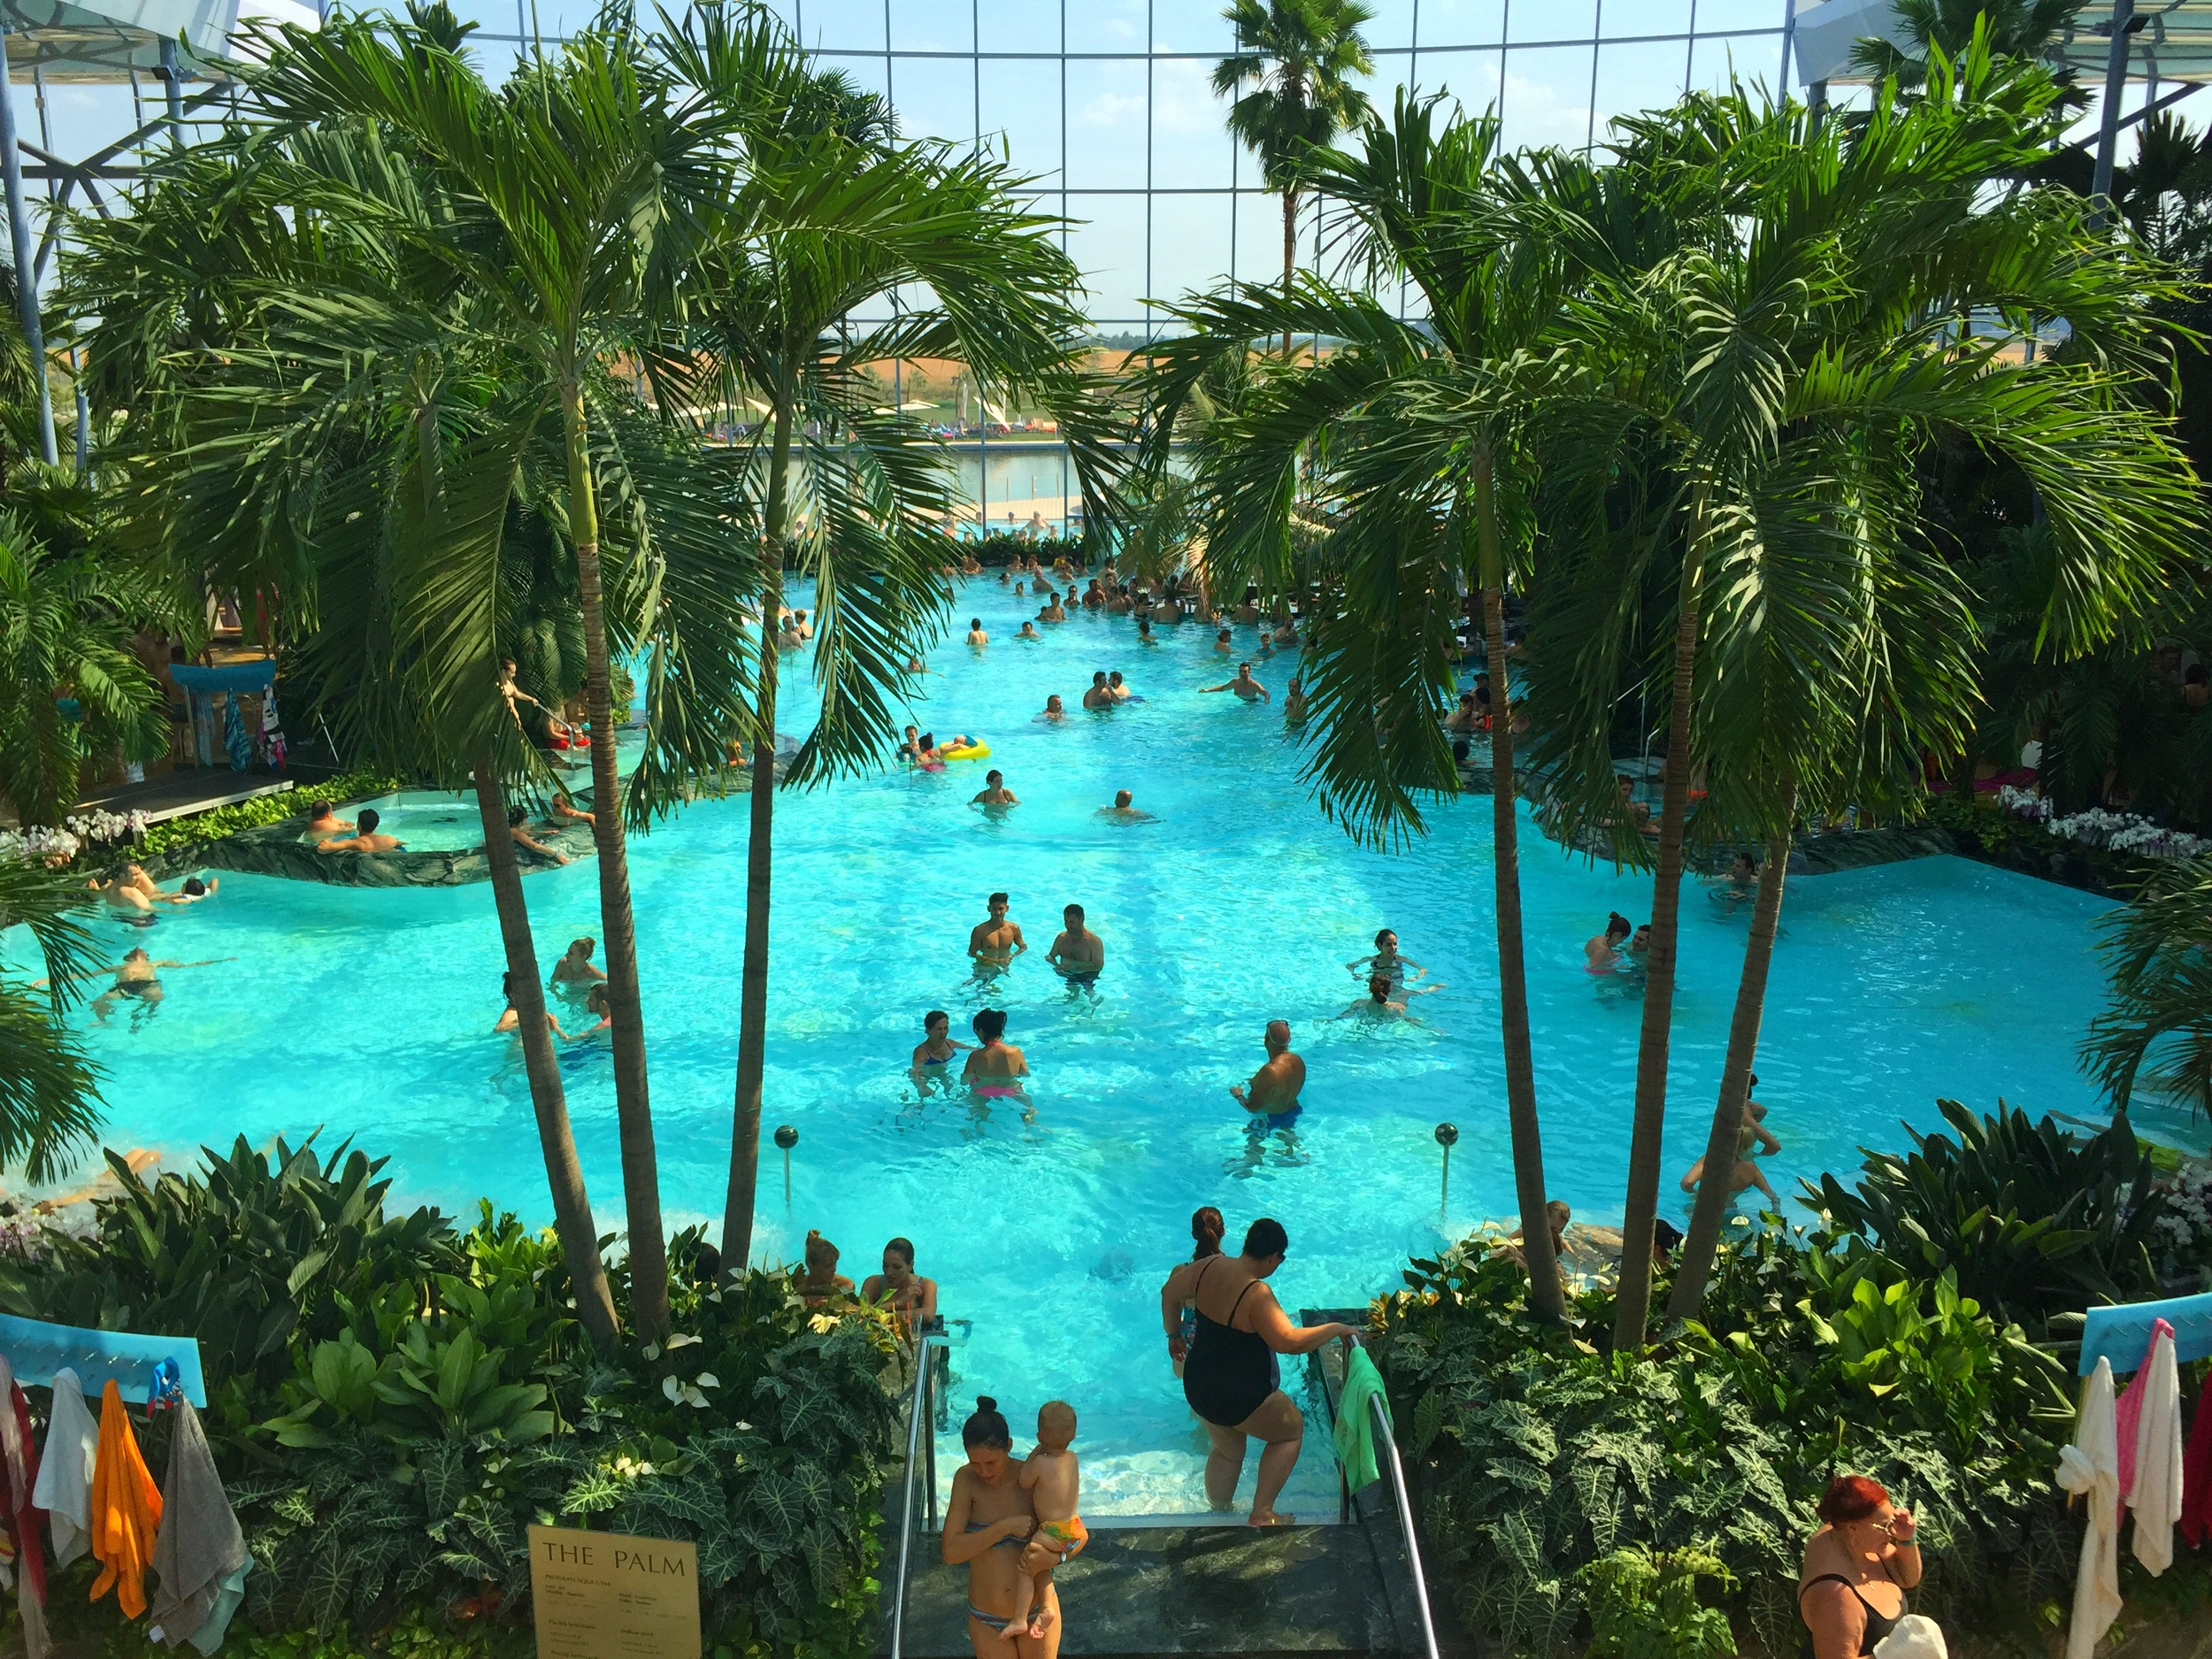 The Therme Bucaresti, from the 2nd floor of the Palm